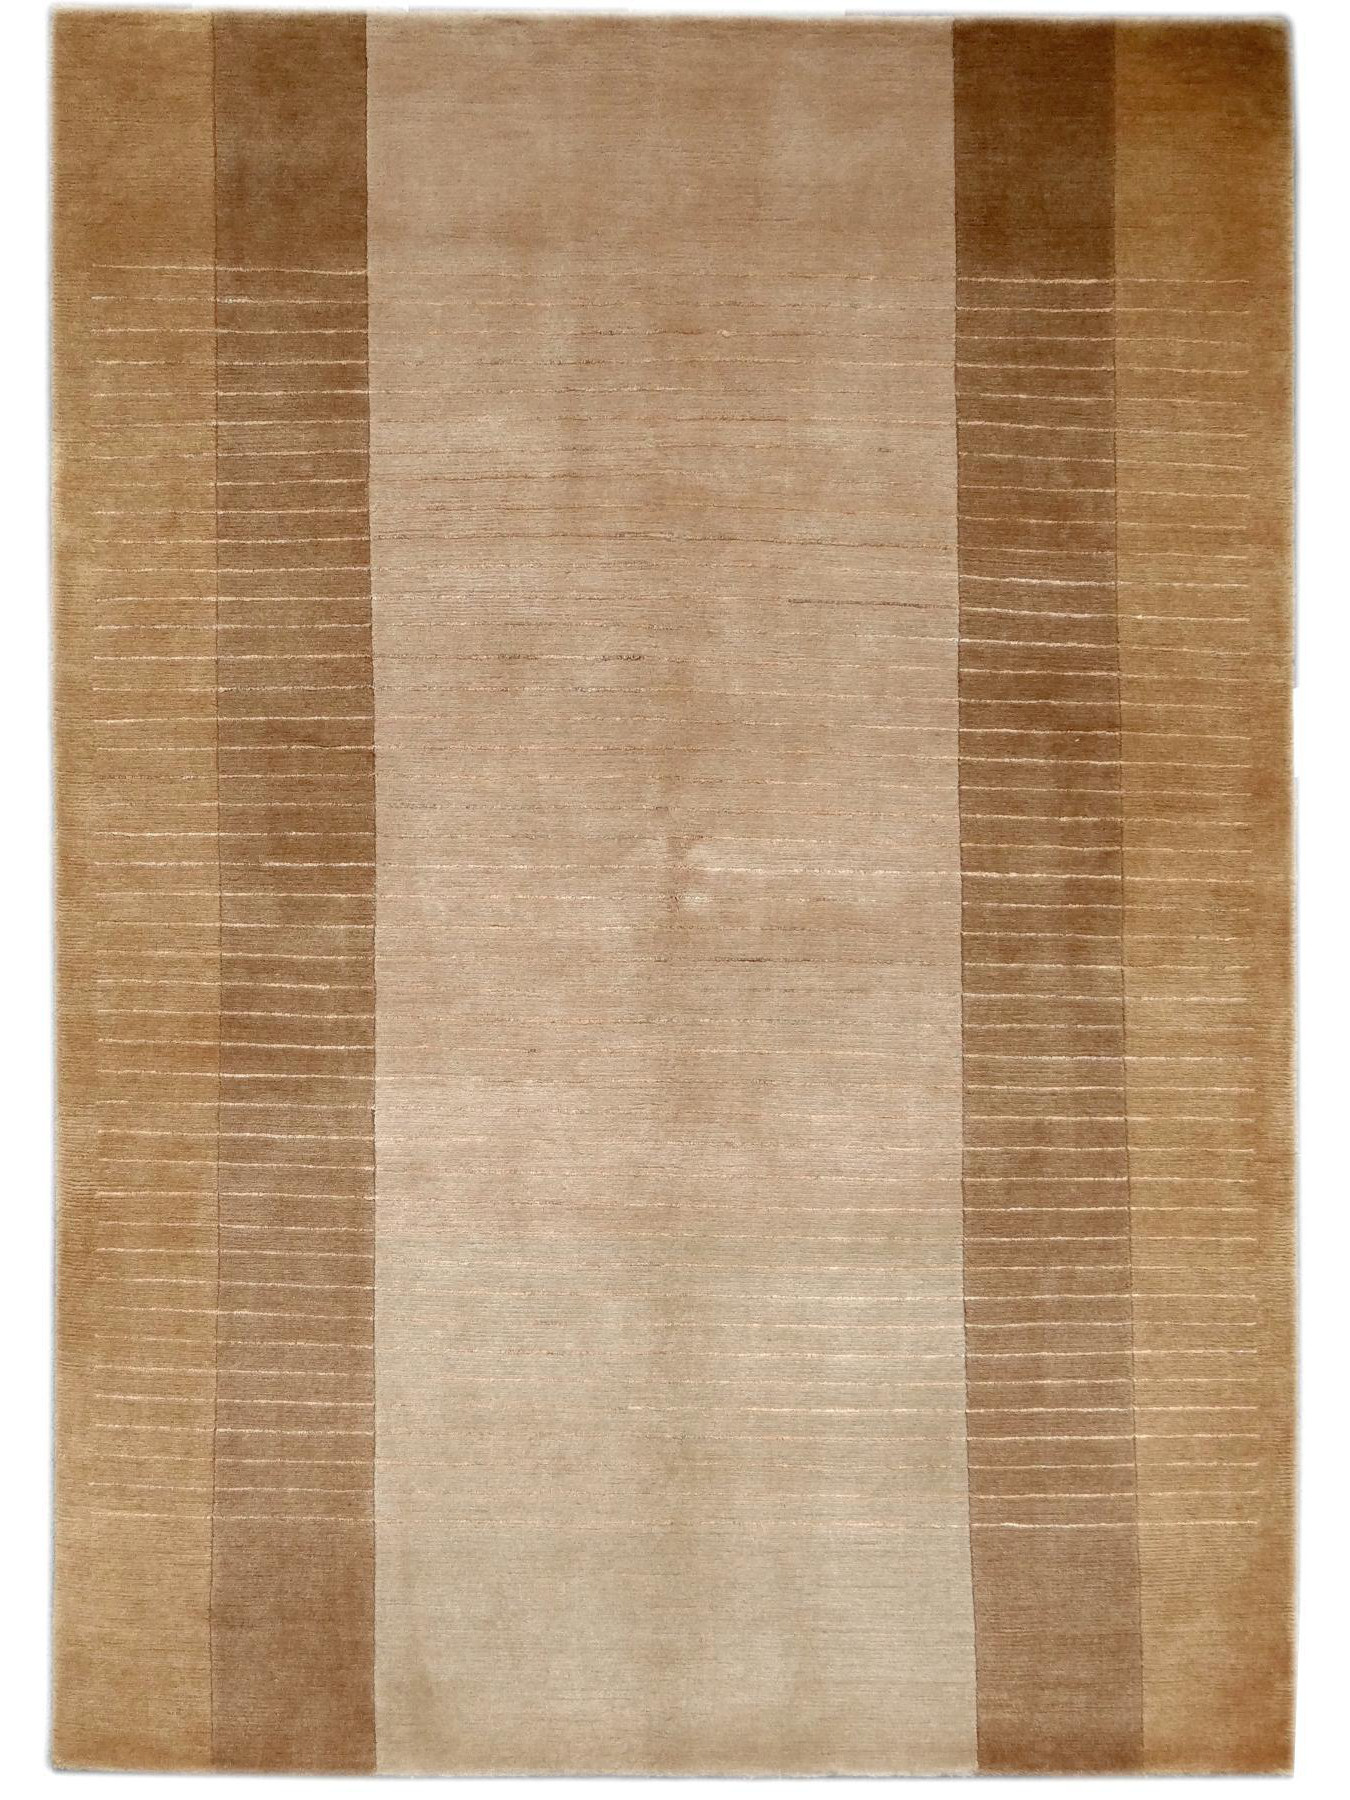 Design carpets - SMOKE 3 - H5505